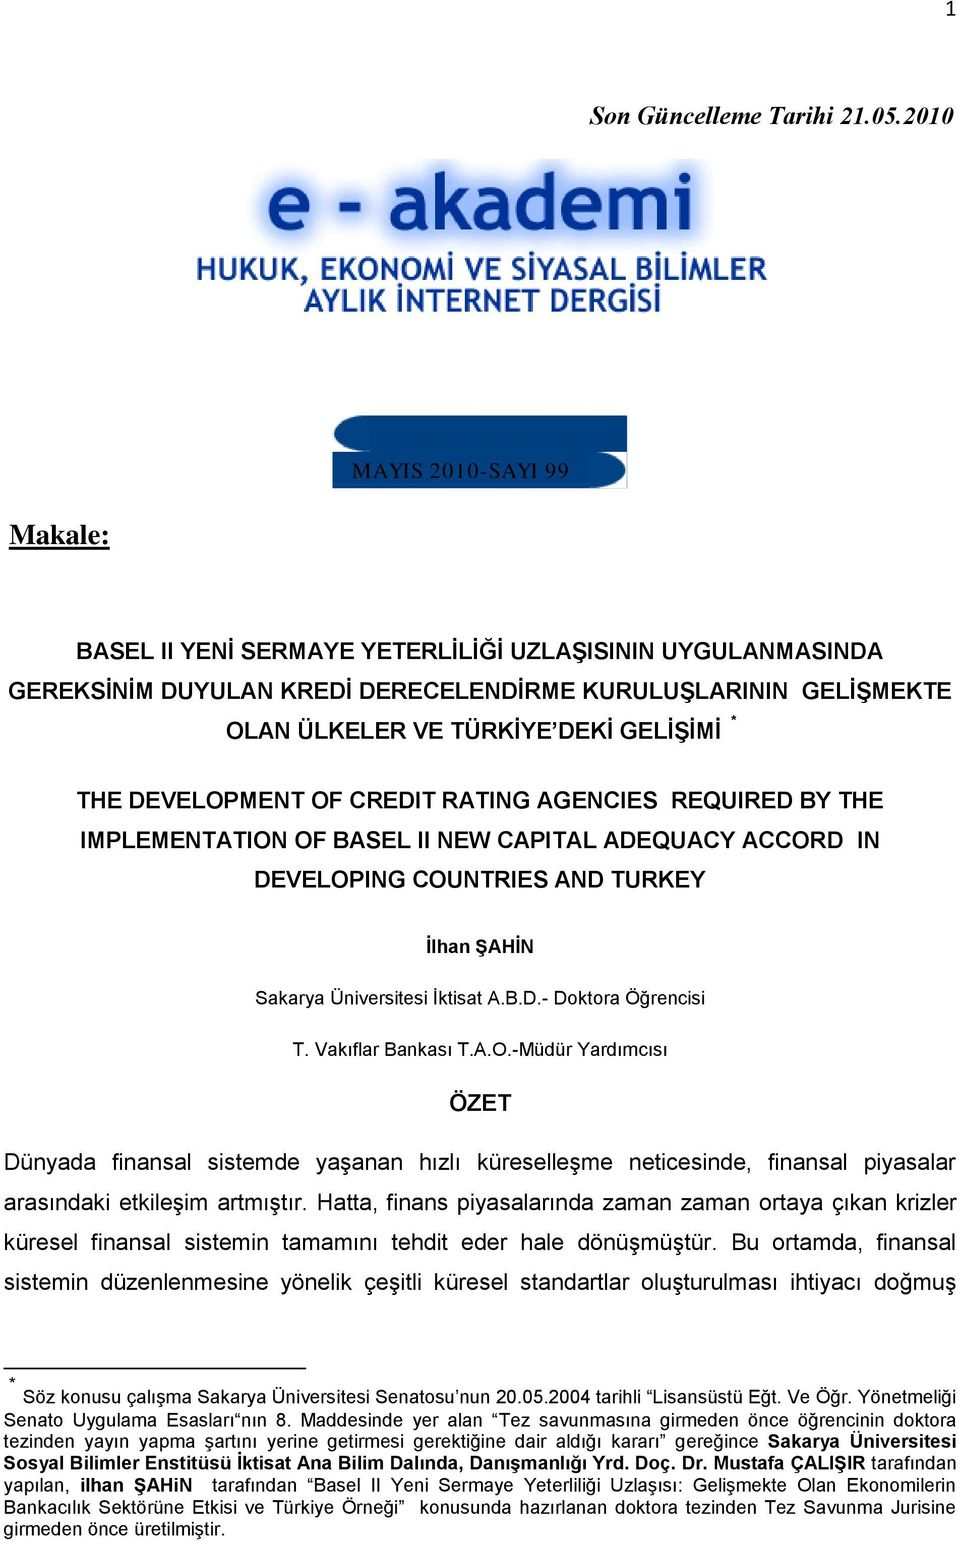 THE DEVELOPMENT OF CREDIT RATING AGENCIES REQUIRED BY THE IMPLEMENTATION OF BASEL II NEW CAPITAL ADEQUACY ACCORD IN DEVELOPING COUNTRIES AND TURKEY İlhan ŞAHİN Sakarya Üniversitesi İktisat A.B.D.- Doktora Öğrencisi T.